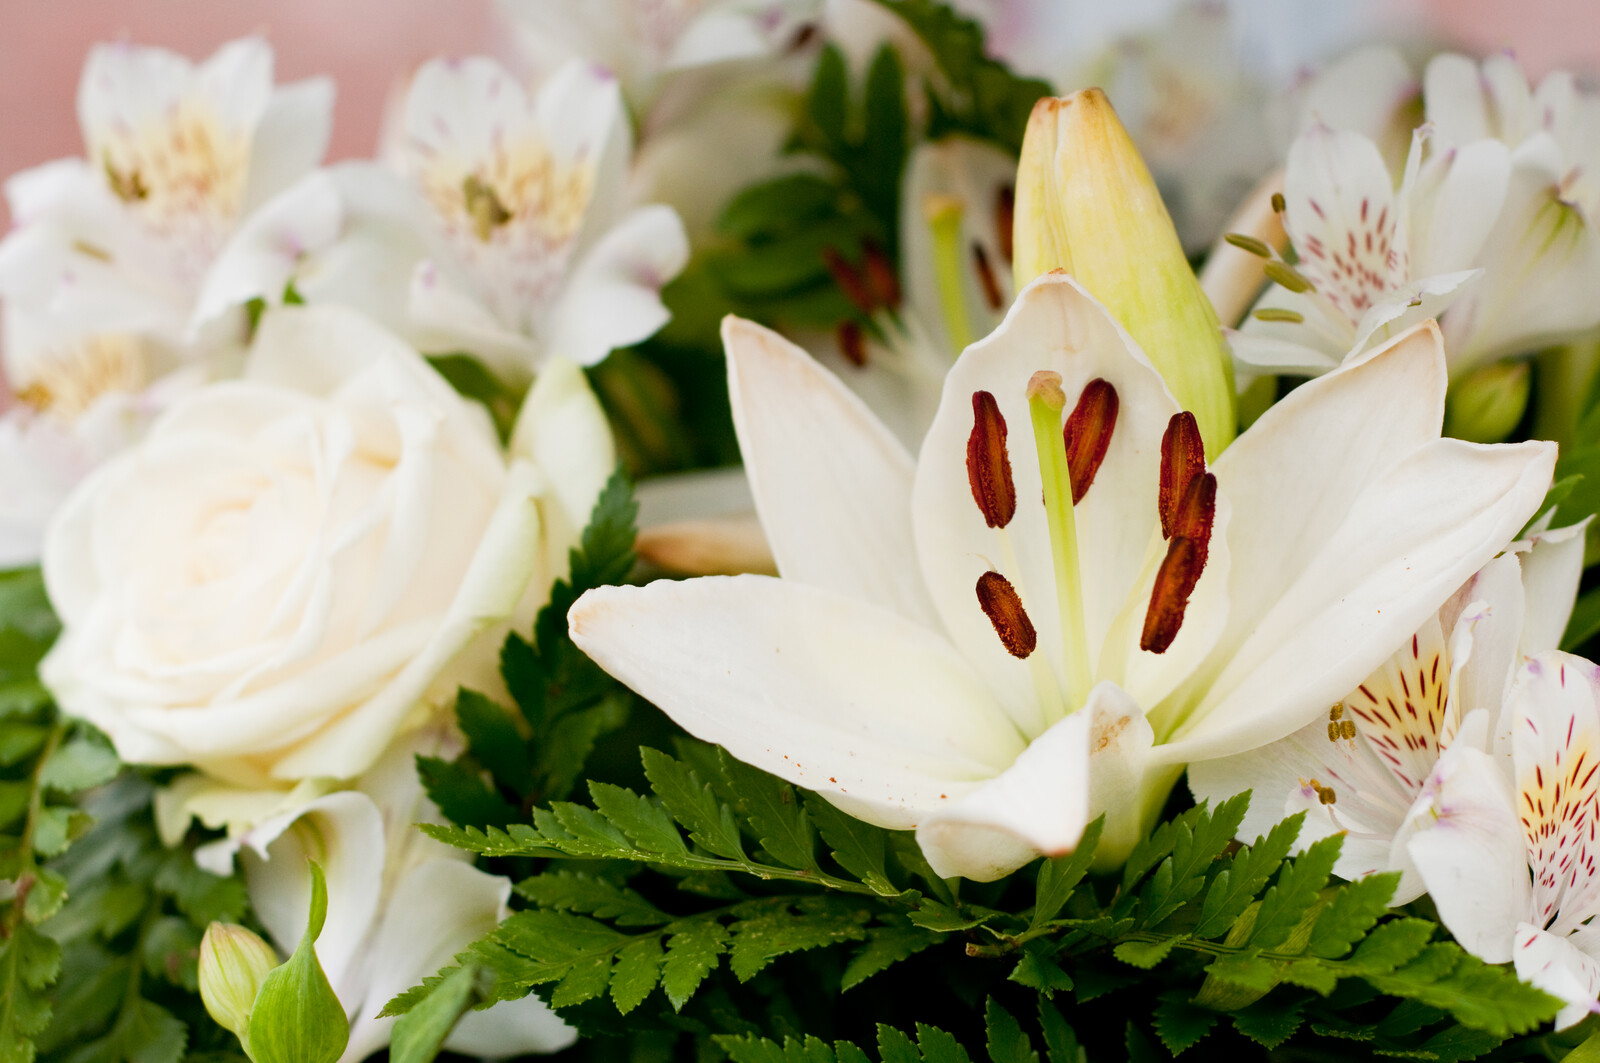 Funeral Scams - White funeral flowers with green fern accents includes various lilies and a white rose